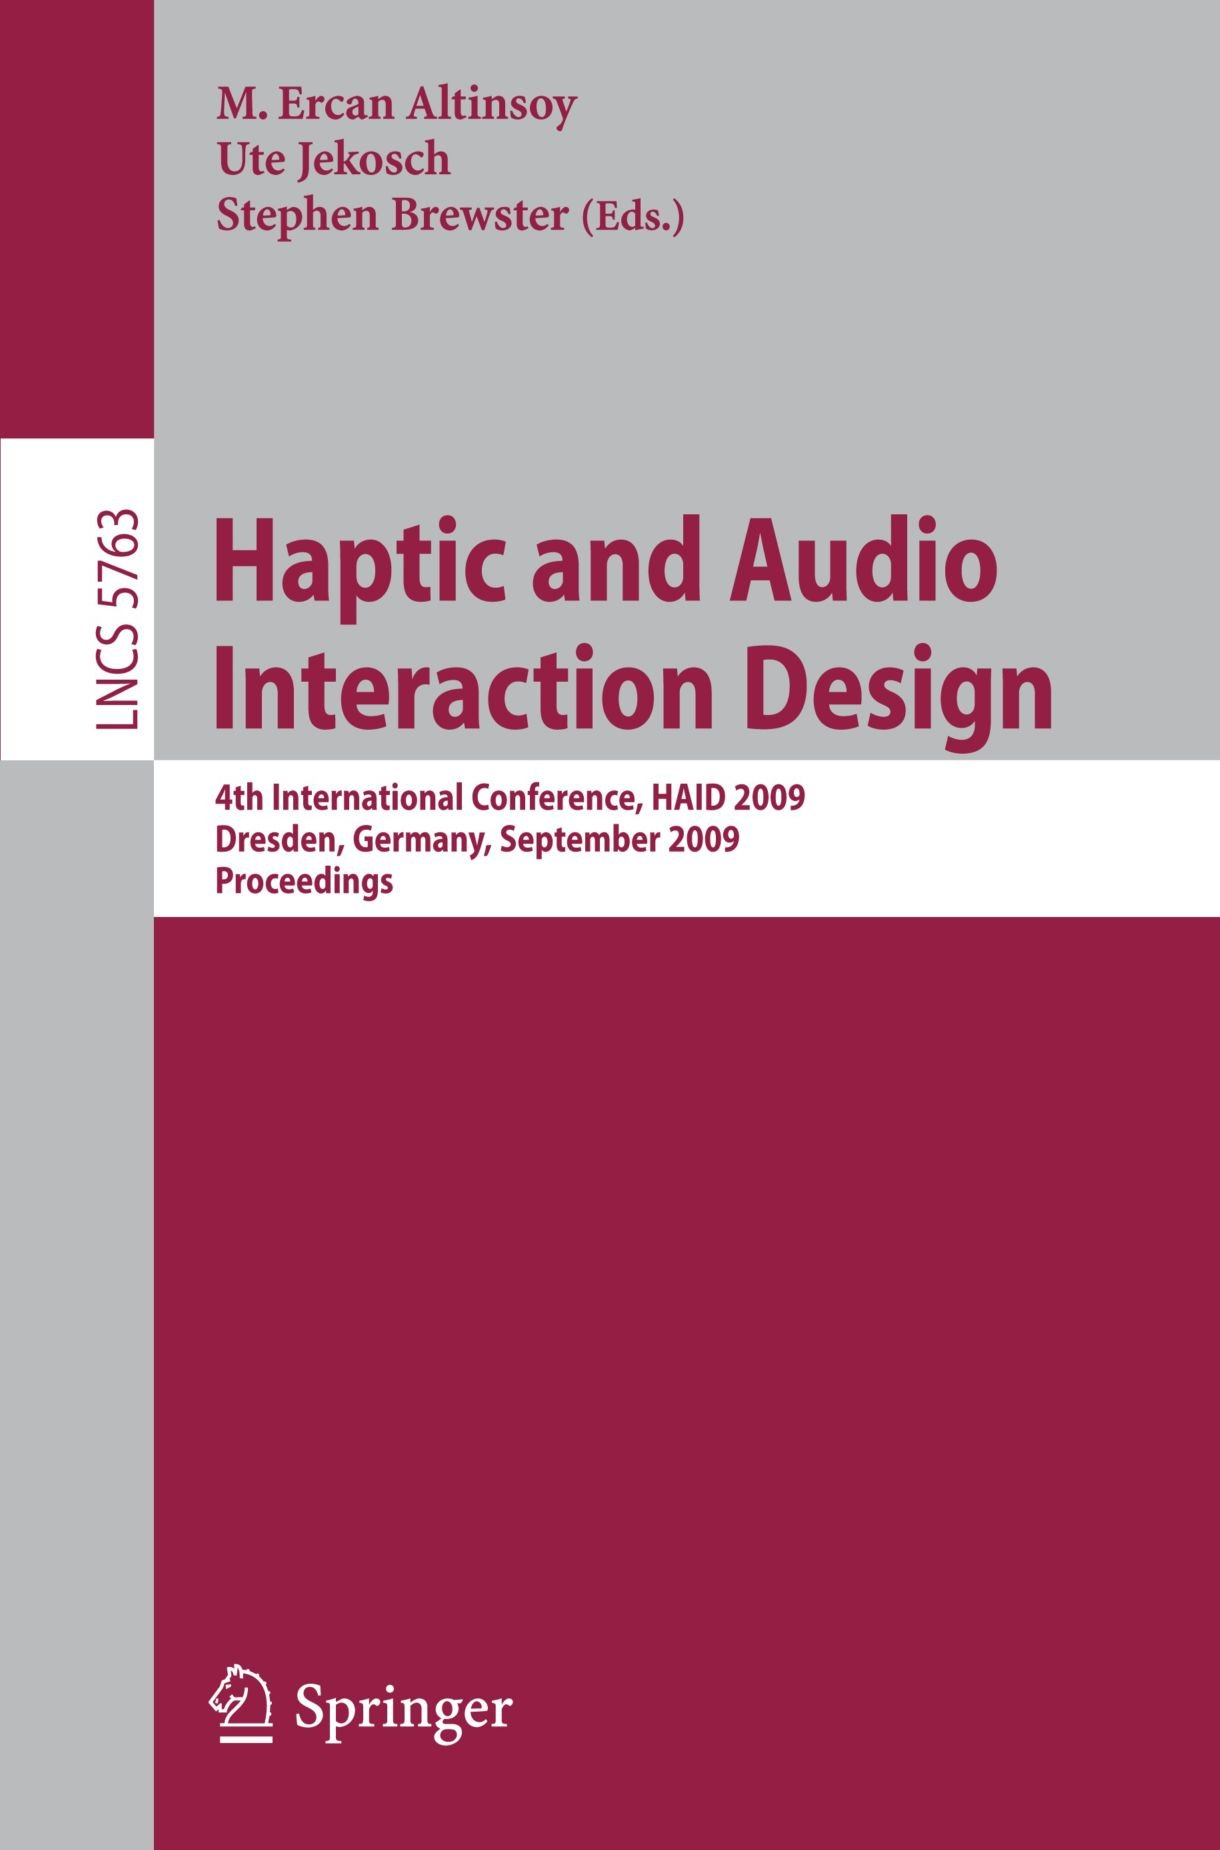 Haptic and Audio Interaction Design: 4th International Conference, HAID 2009 Dresden, Germany, September 10-11, 2009 Proceedings (Lecture Notes in Computer Science)